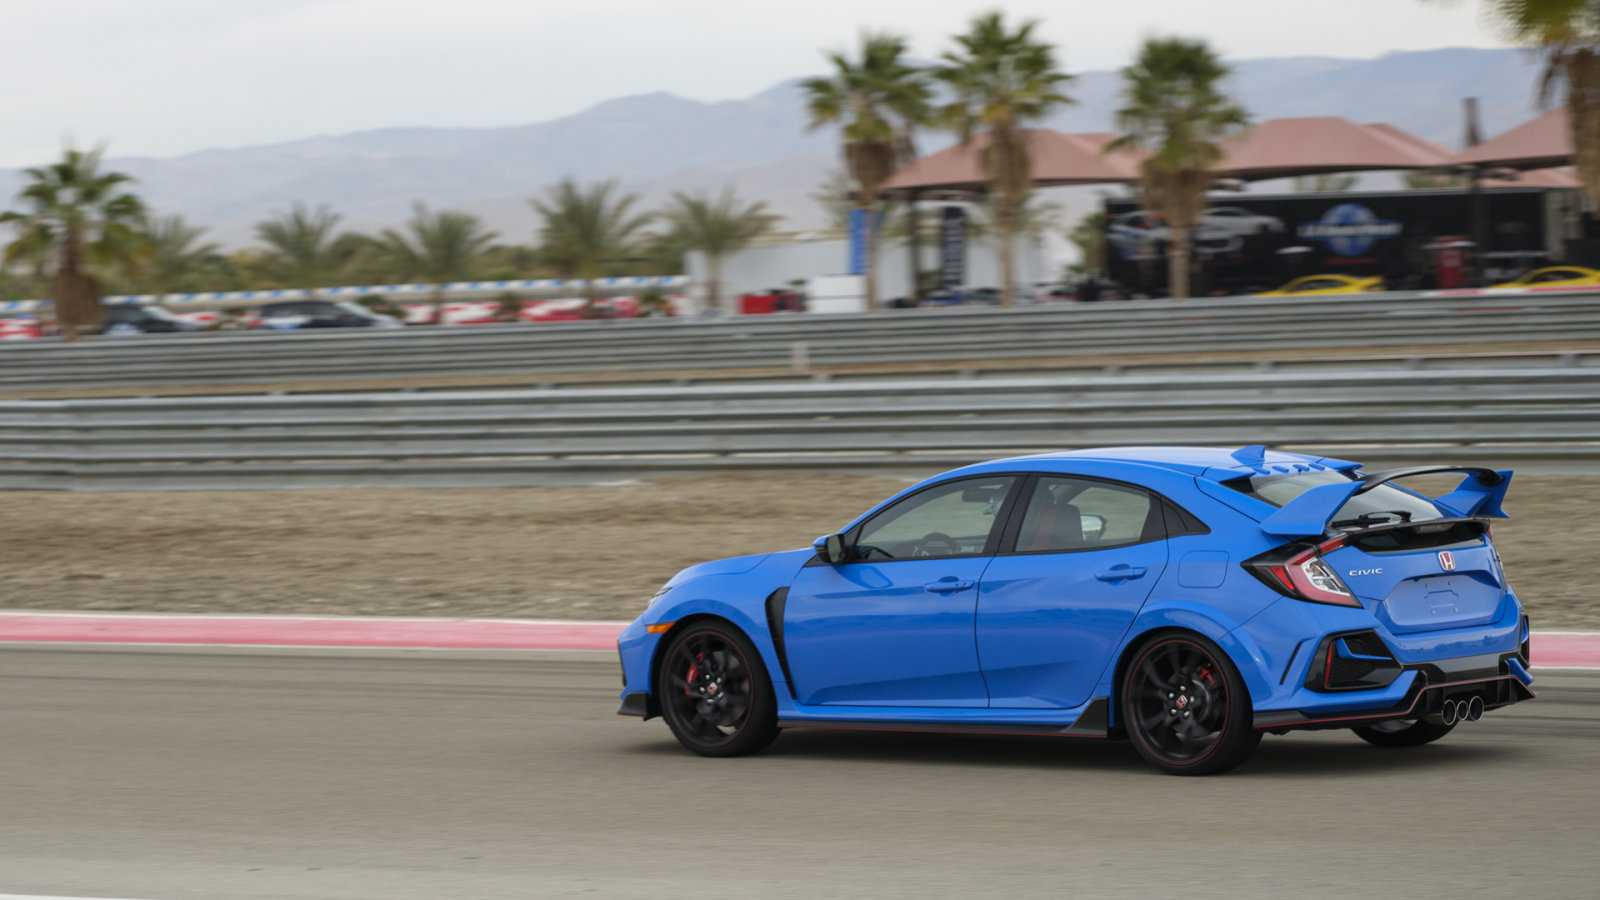 2021 Honda Civic Type R Limited Edition First Drive – Lighter, Faster and Unique